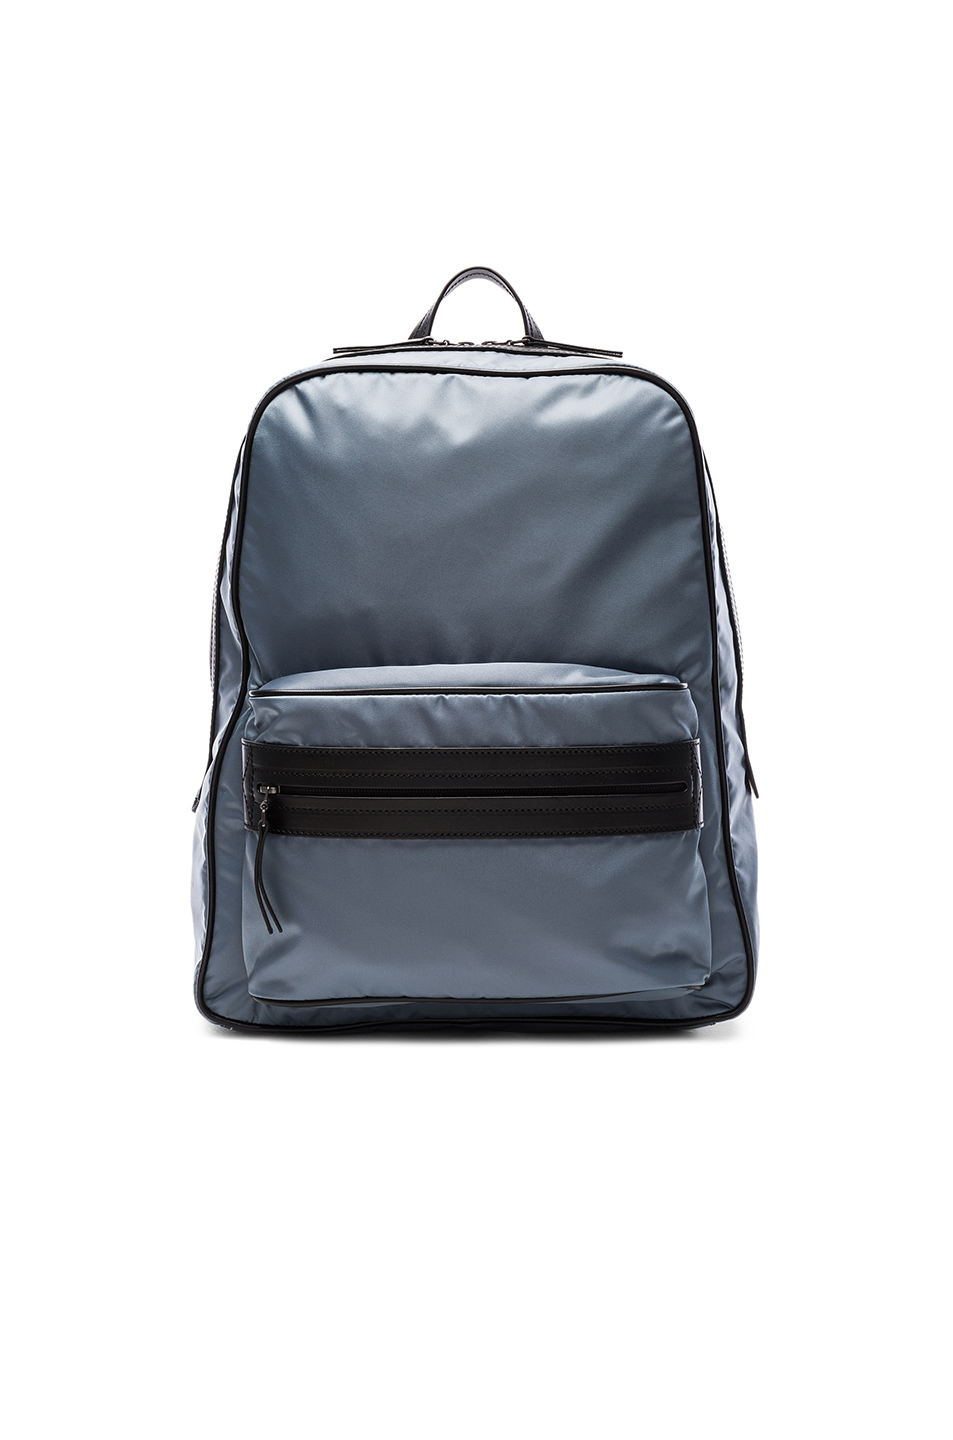 Maison Margiela Zip Backpack in Blue